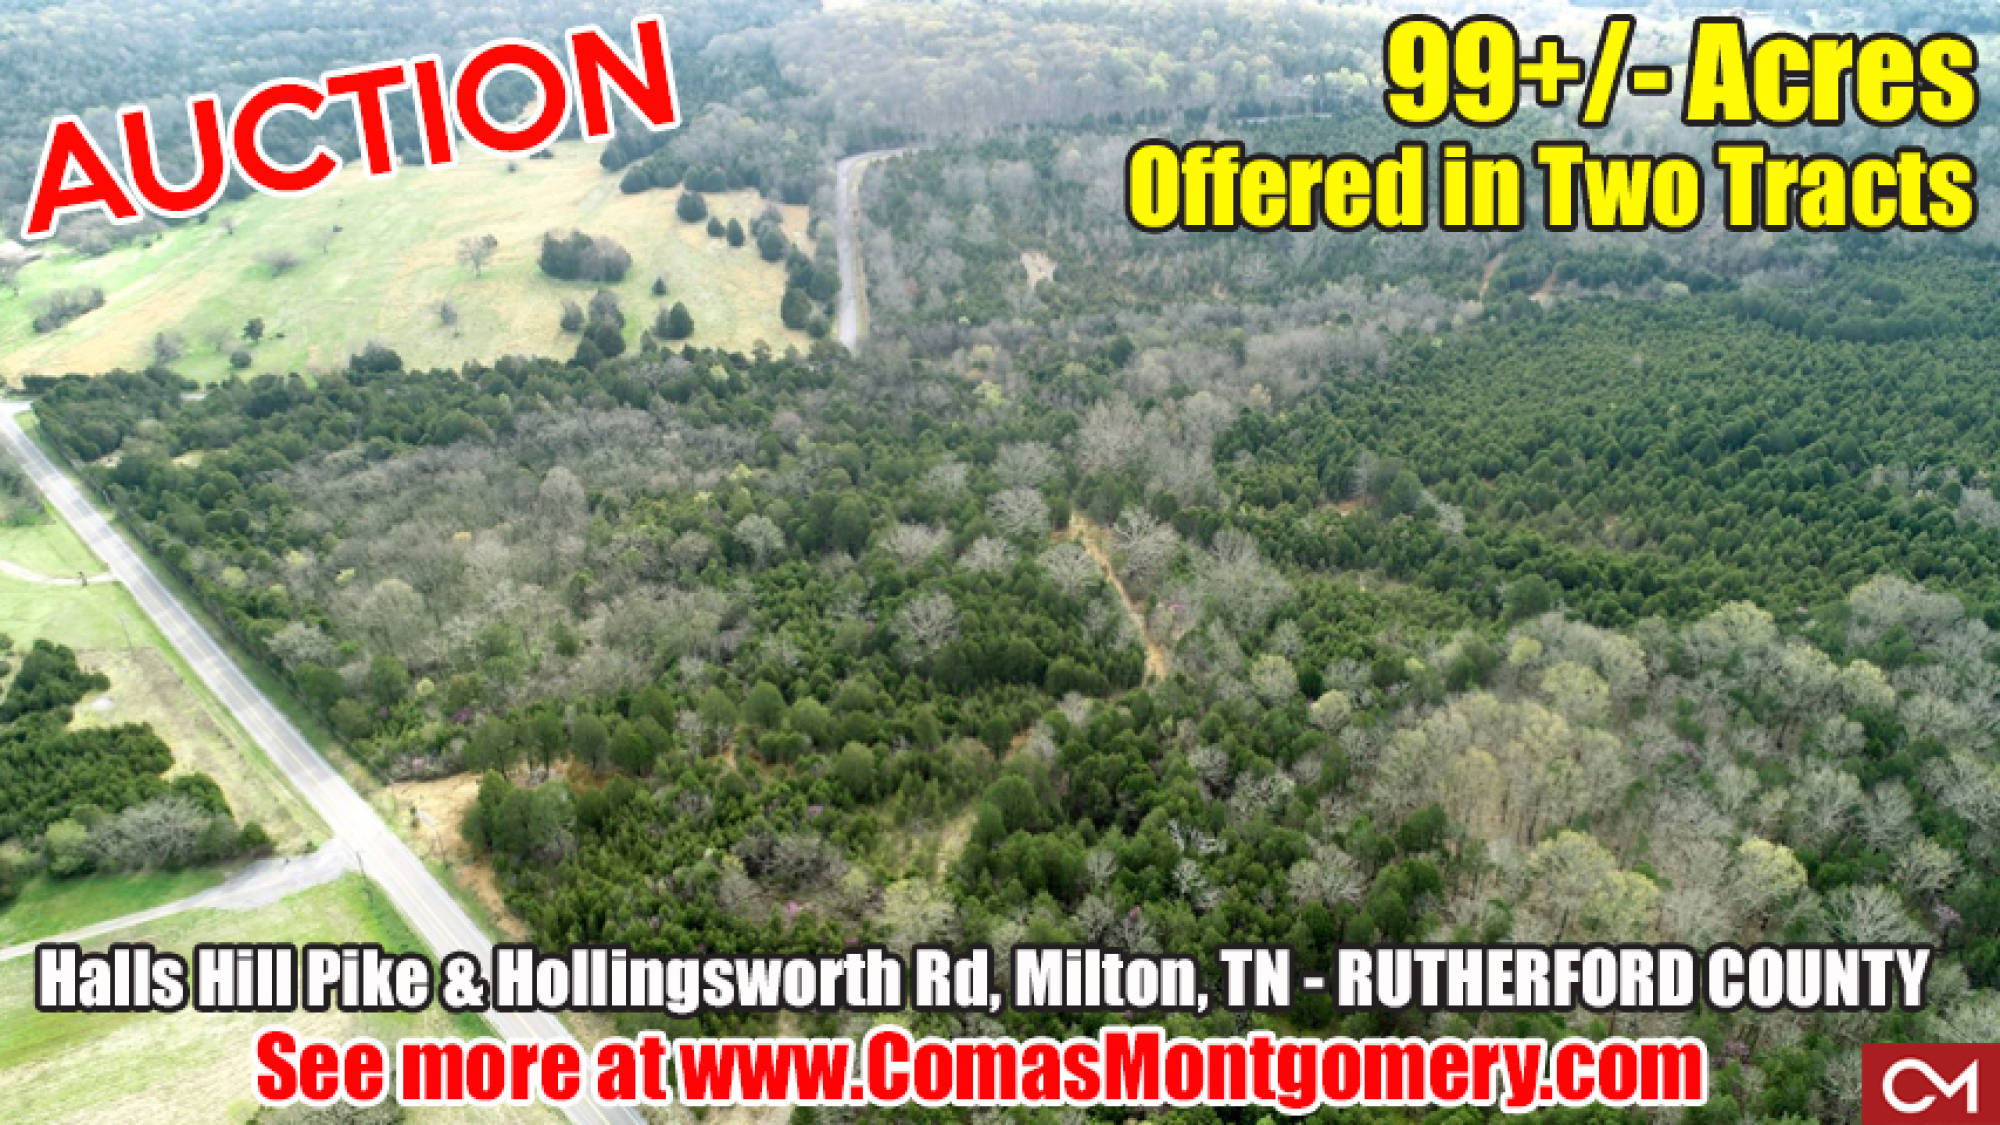 Land, Acres, Tract, For Sale, Milton, Murfreesboro, Rutherford County, Tennessee, Auction, Real Estate, Build, Trees, Comas, Montgomery